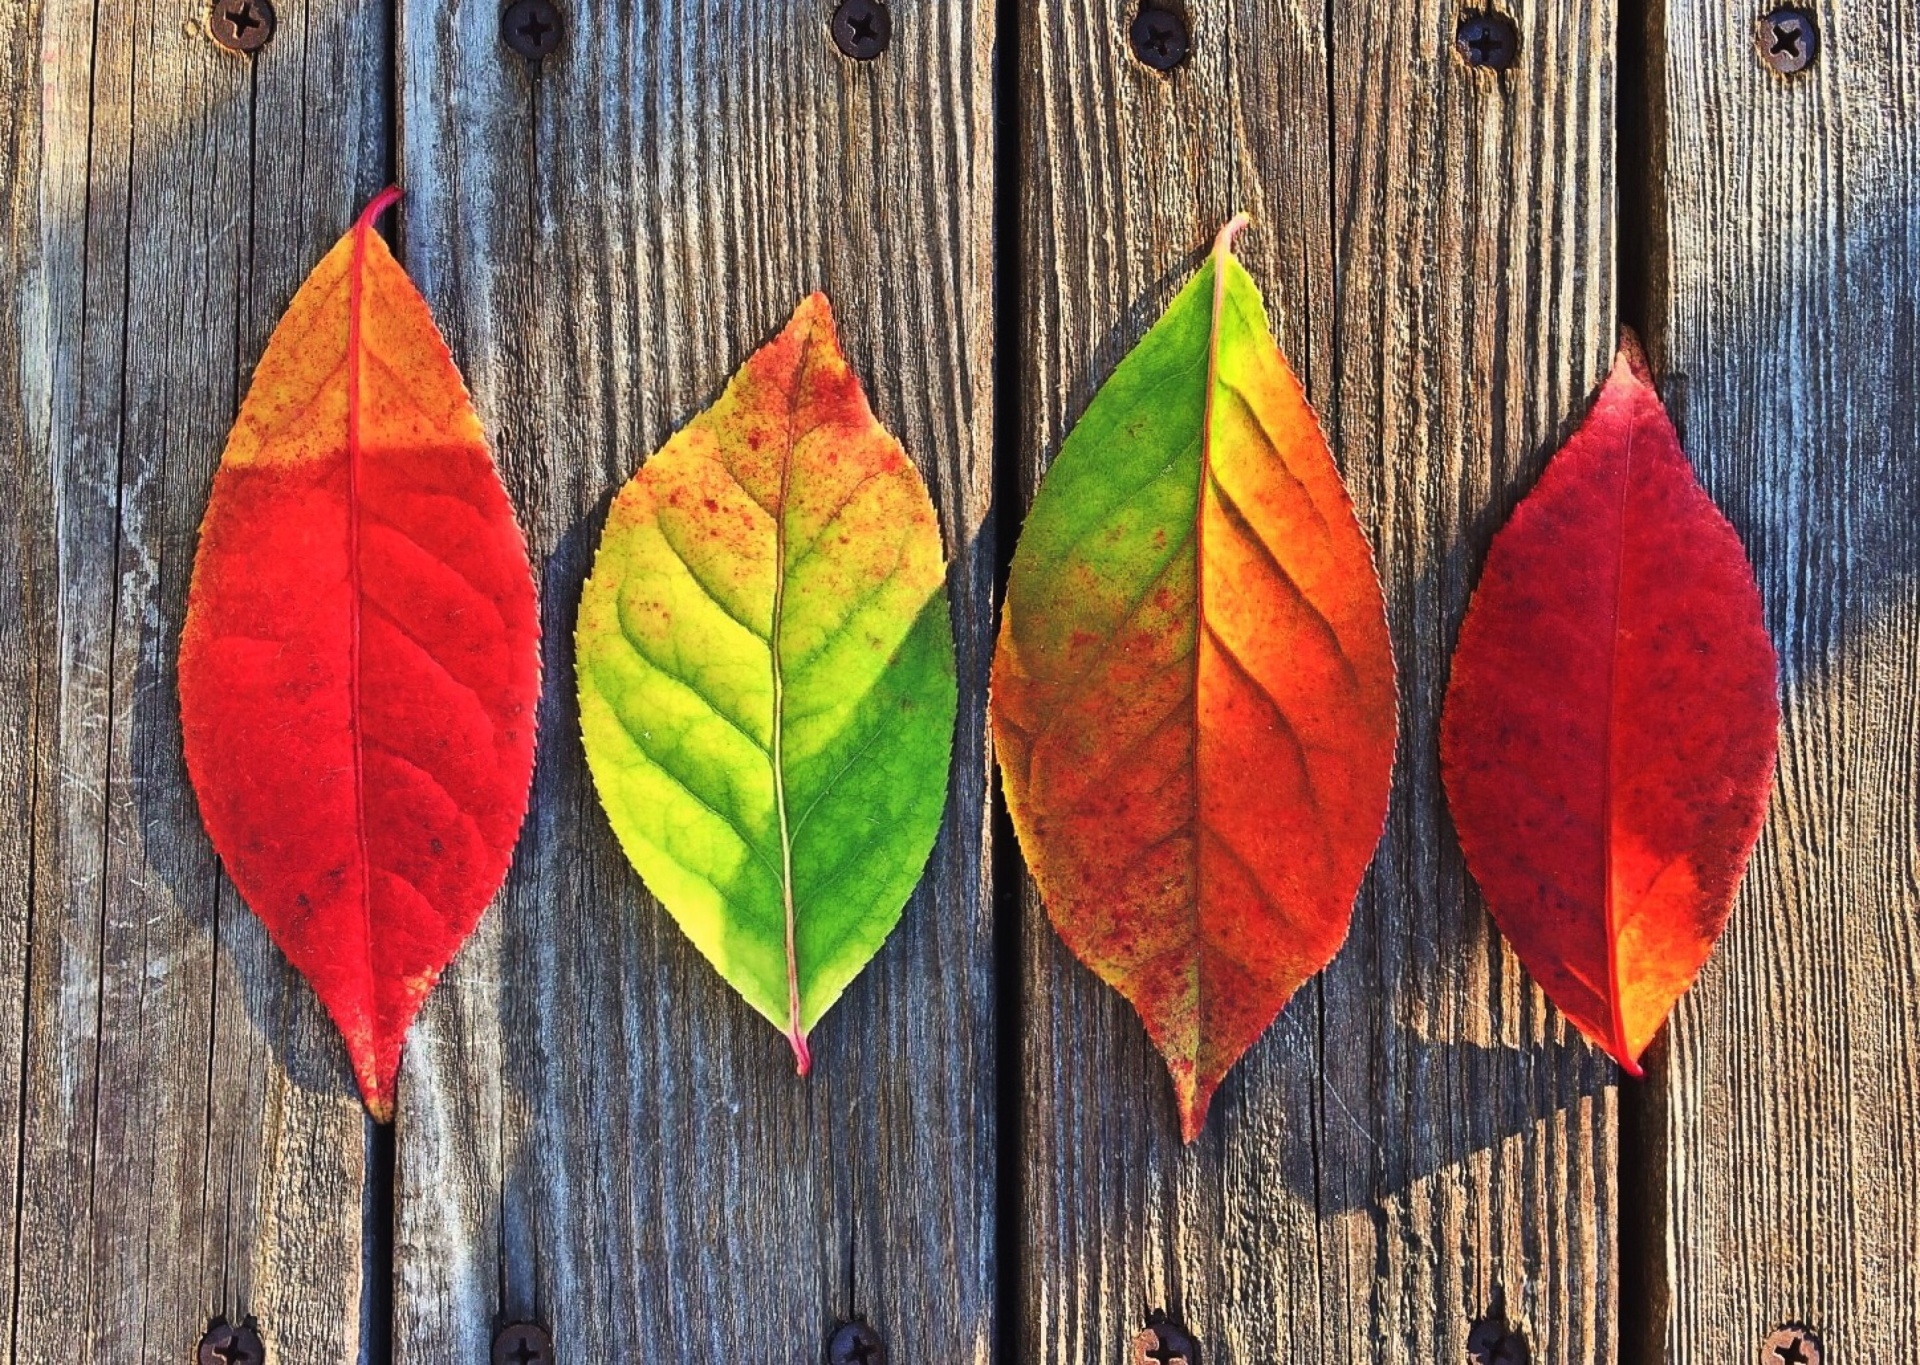 Four leaves in a line, red, yellow, and green.